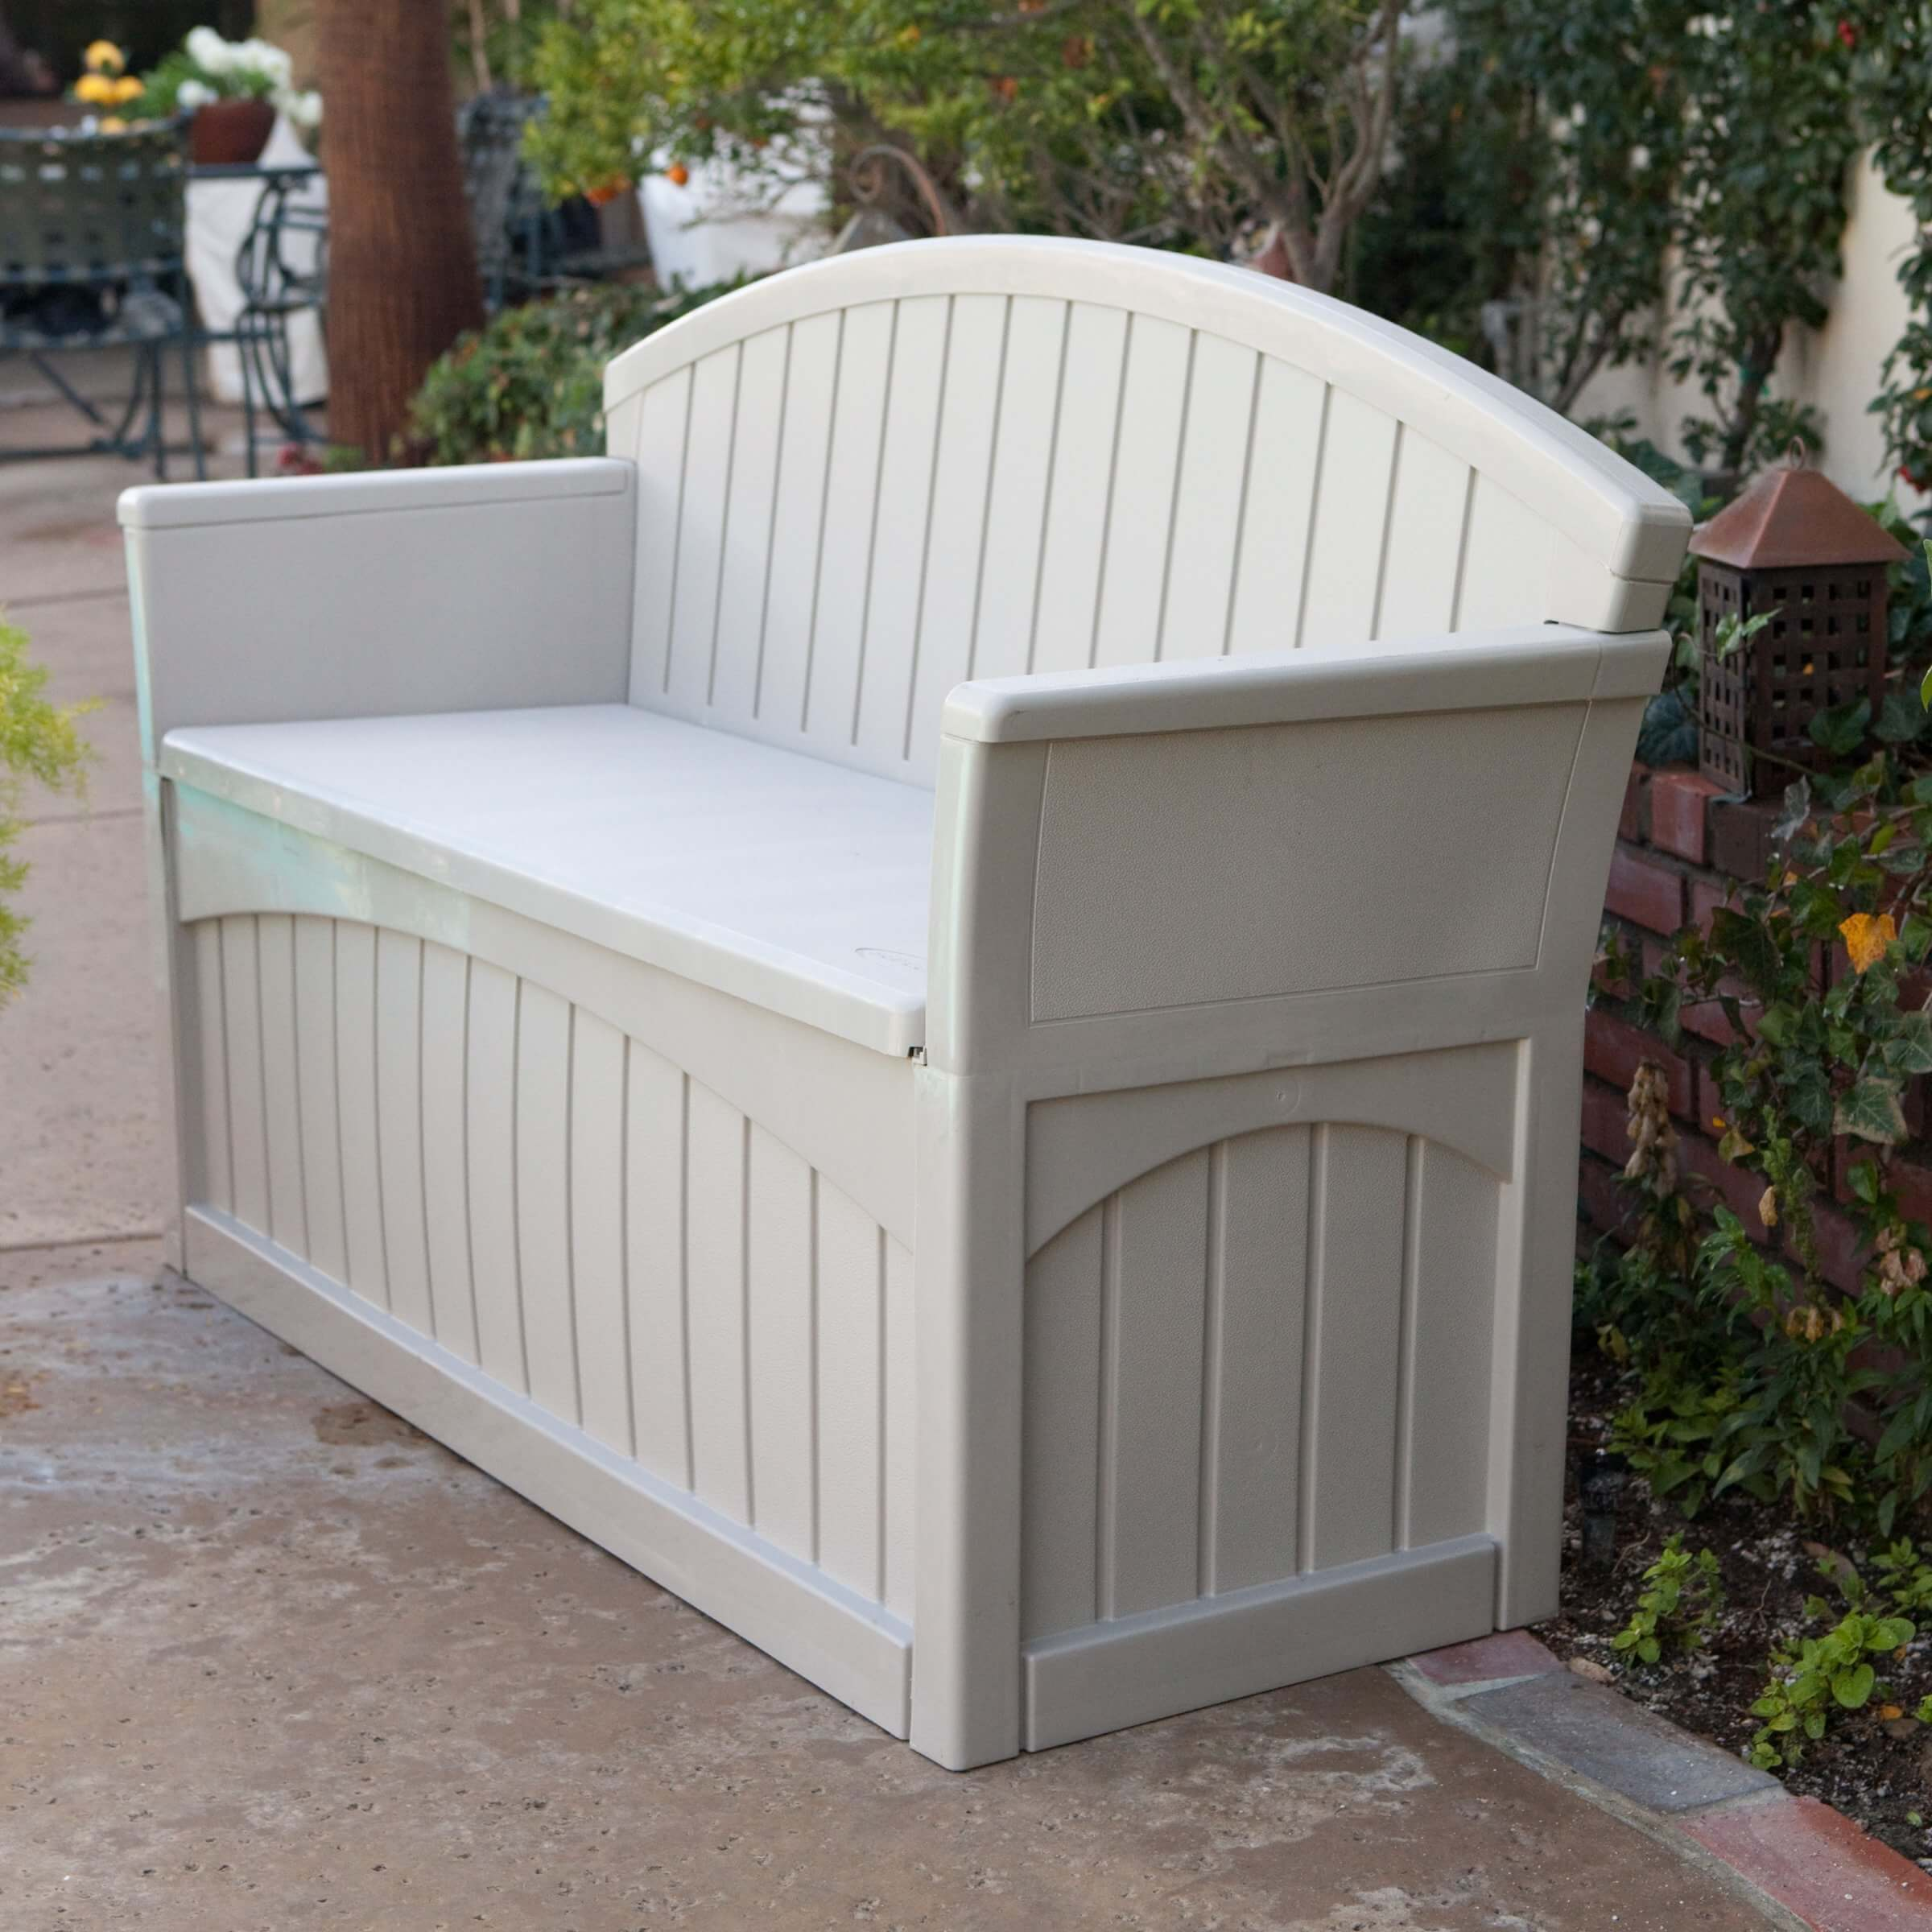 Store Seat Cushions, Towels, Outdoor Décor Or Garden Accessories In The  Under Seat Storage